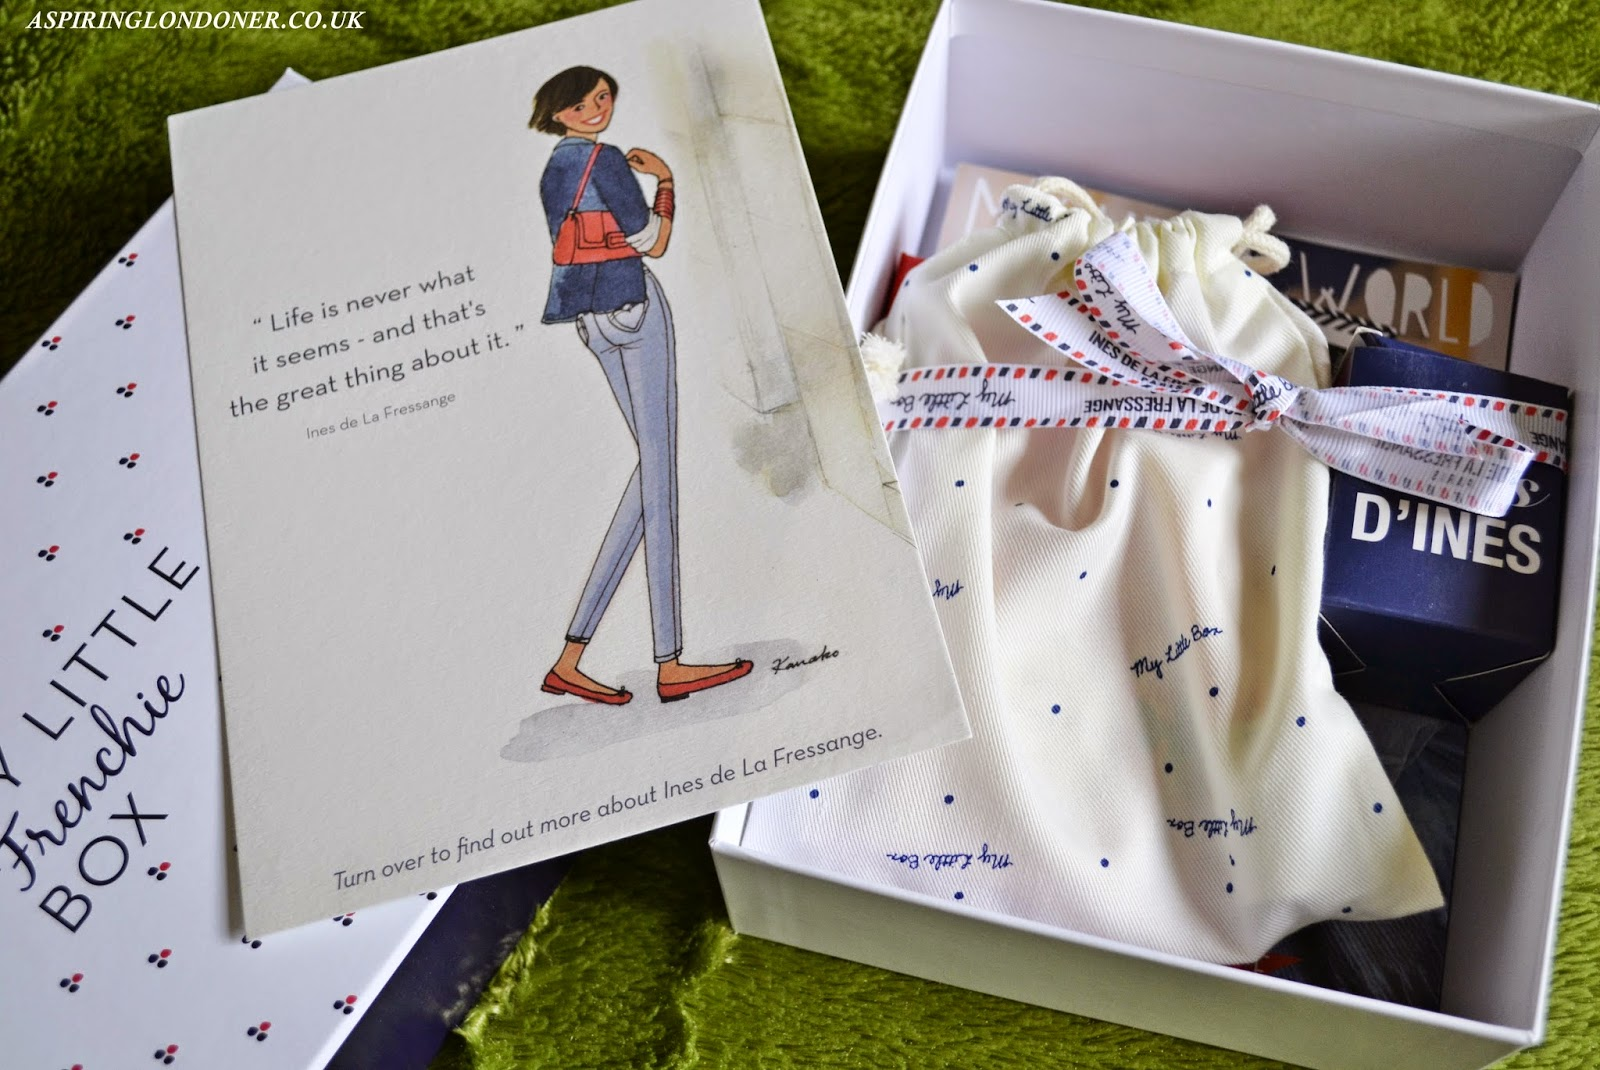 My Little Frenchie Box February 2015 Review - Aspiring Londoner